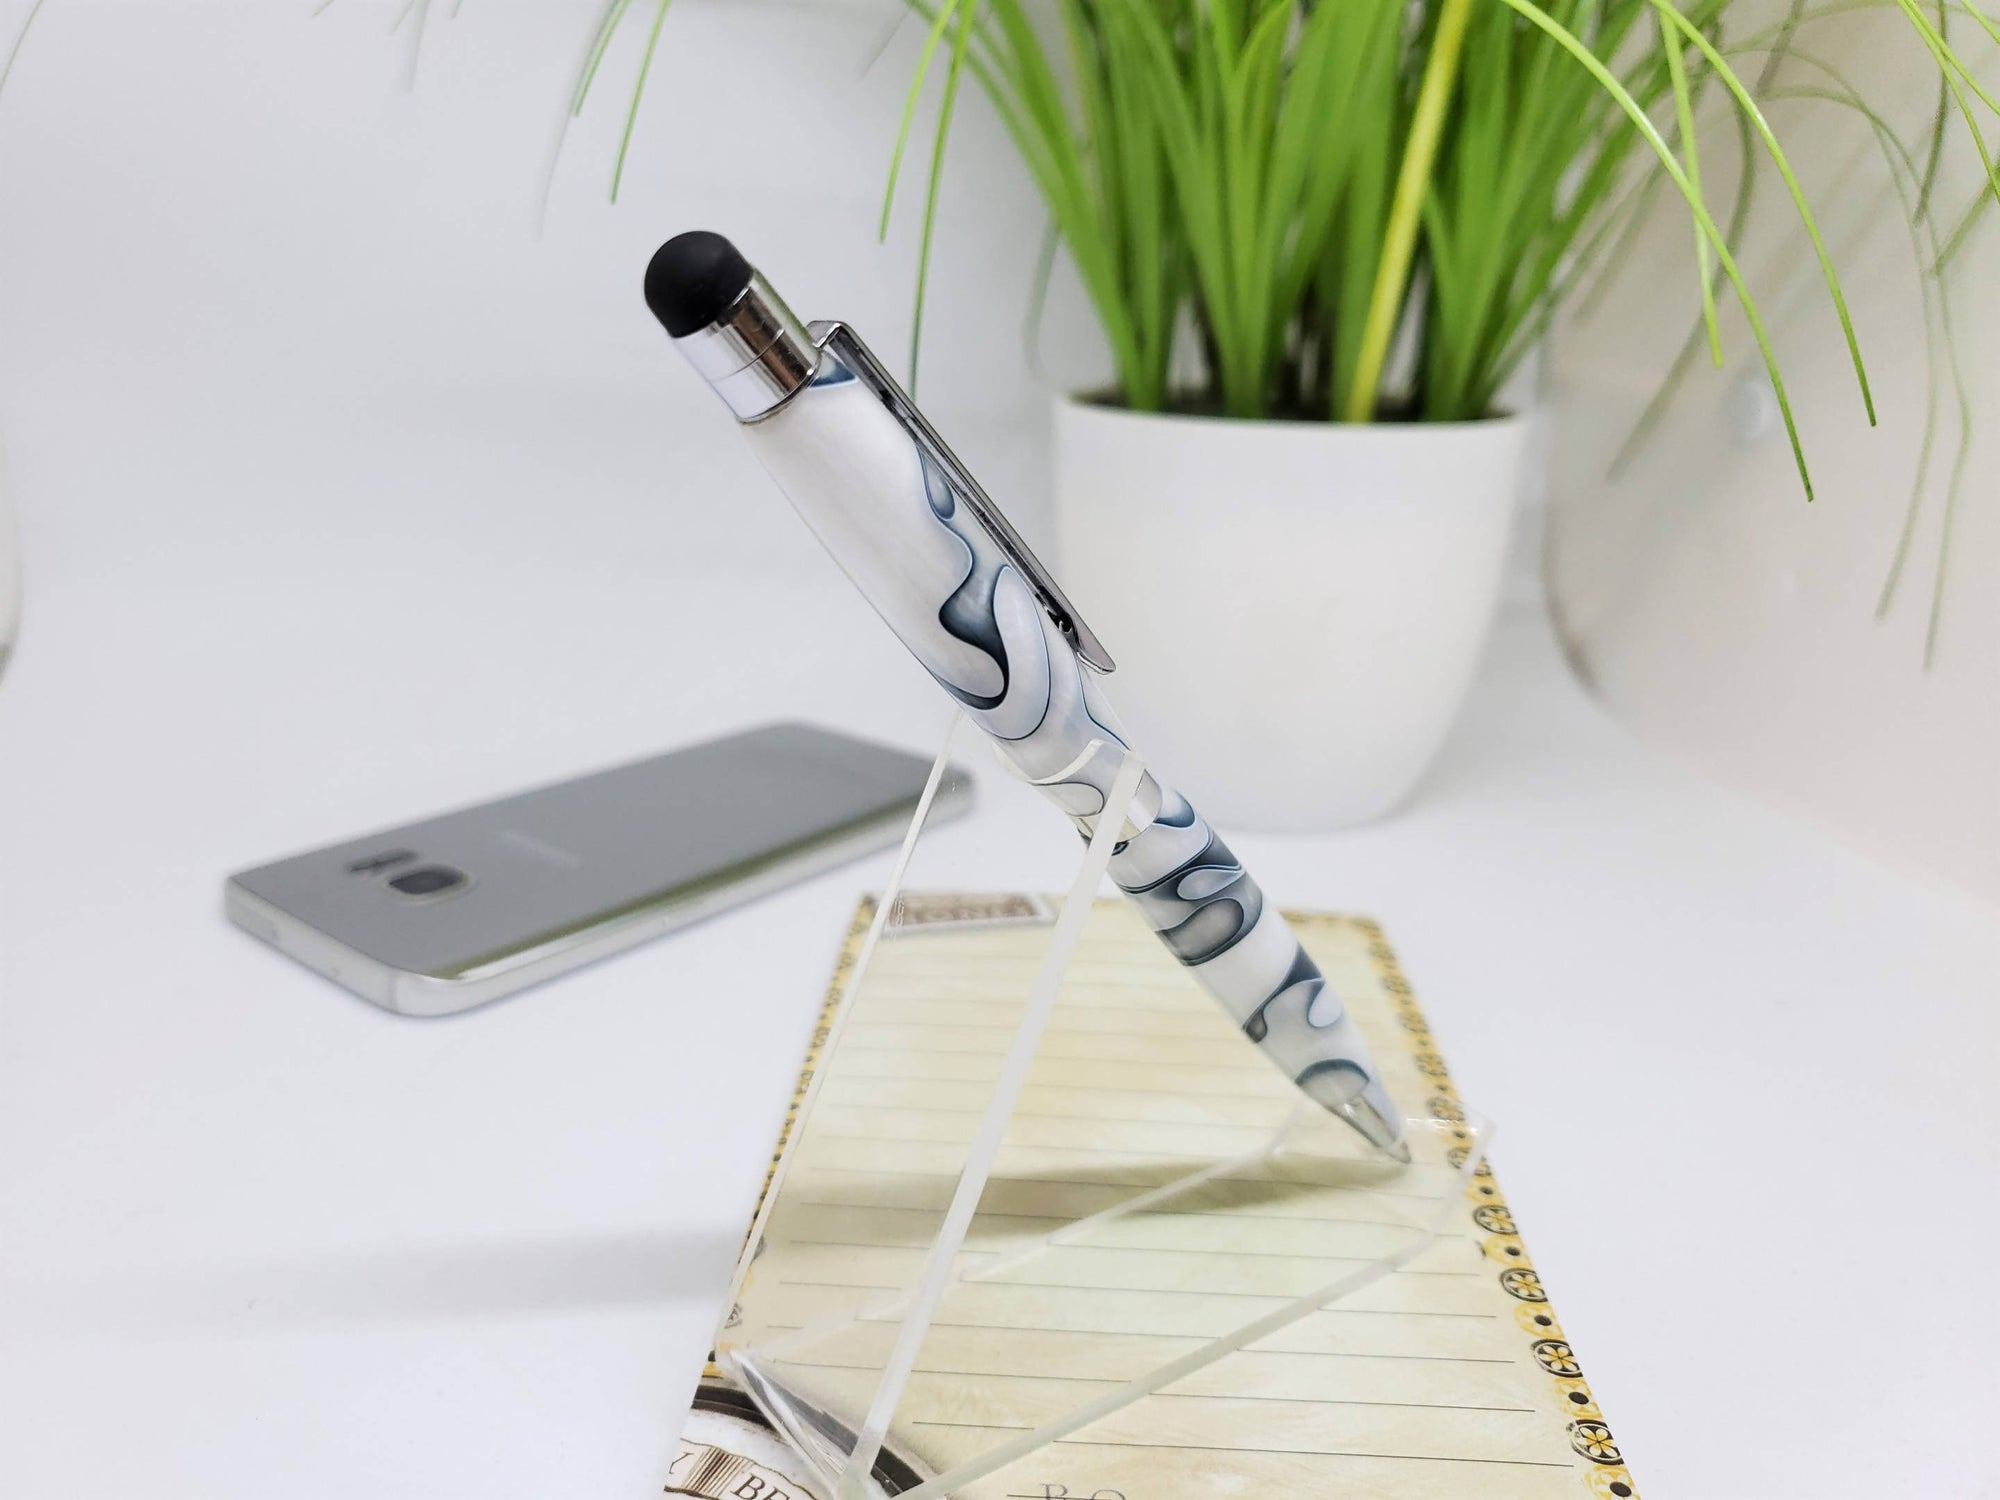 Stylus Pen, Hand Turned, Arctic Ocean Acrylic Body, Chrome Trim, Extra Refill, Gift for Mom, Gift for Daughter, Mother